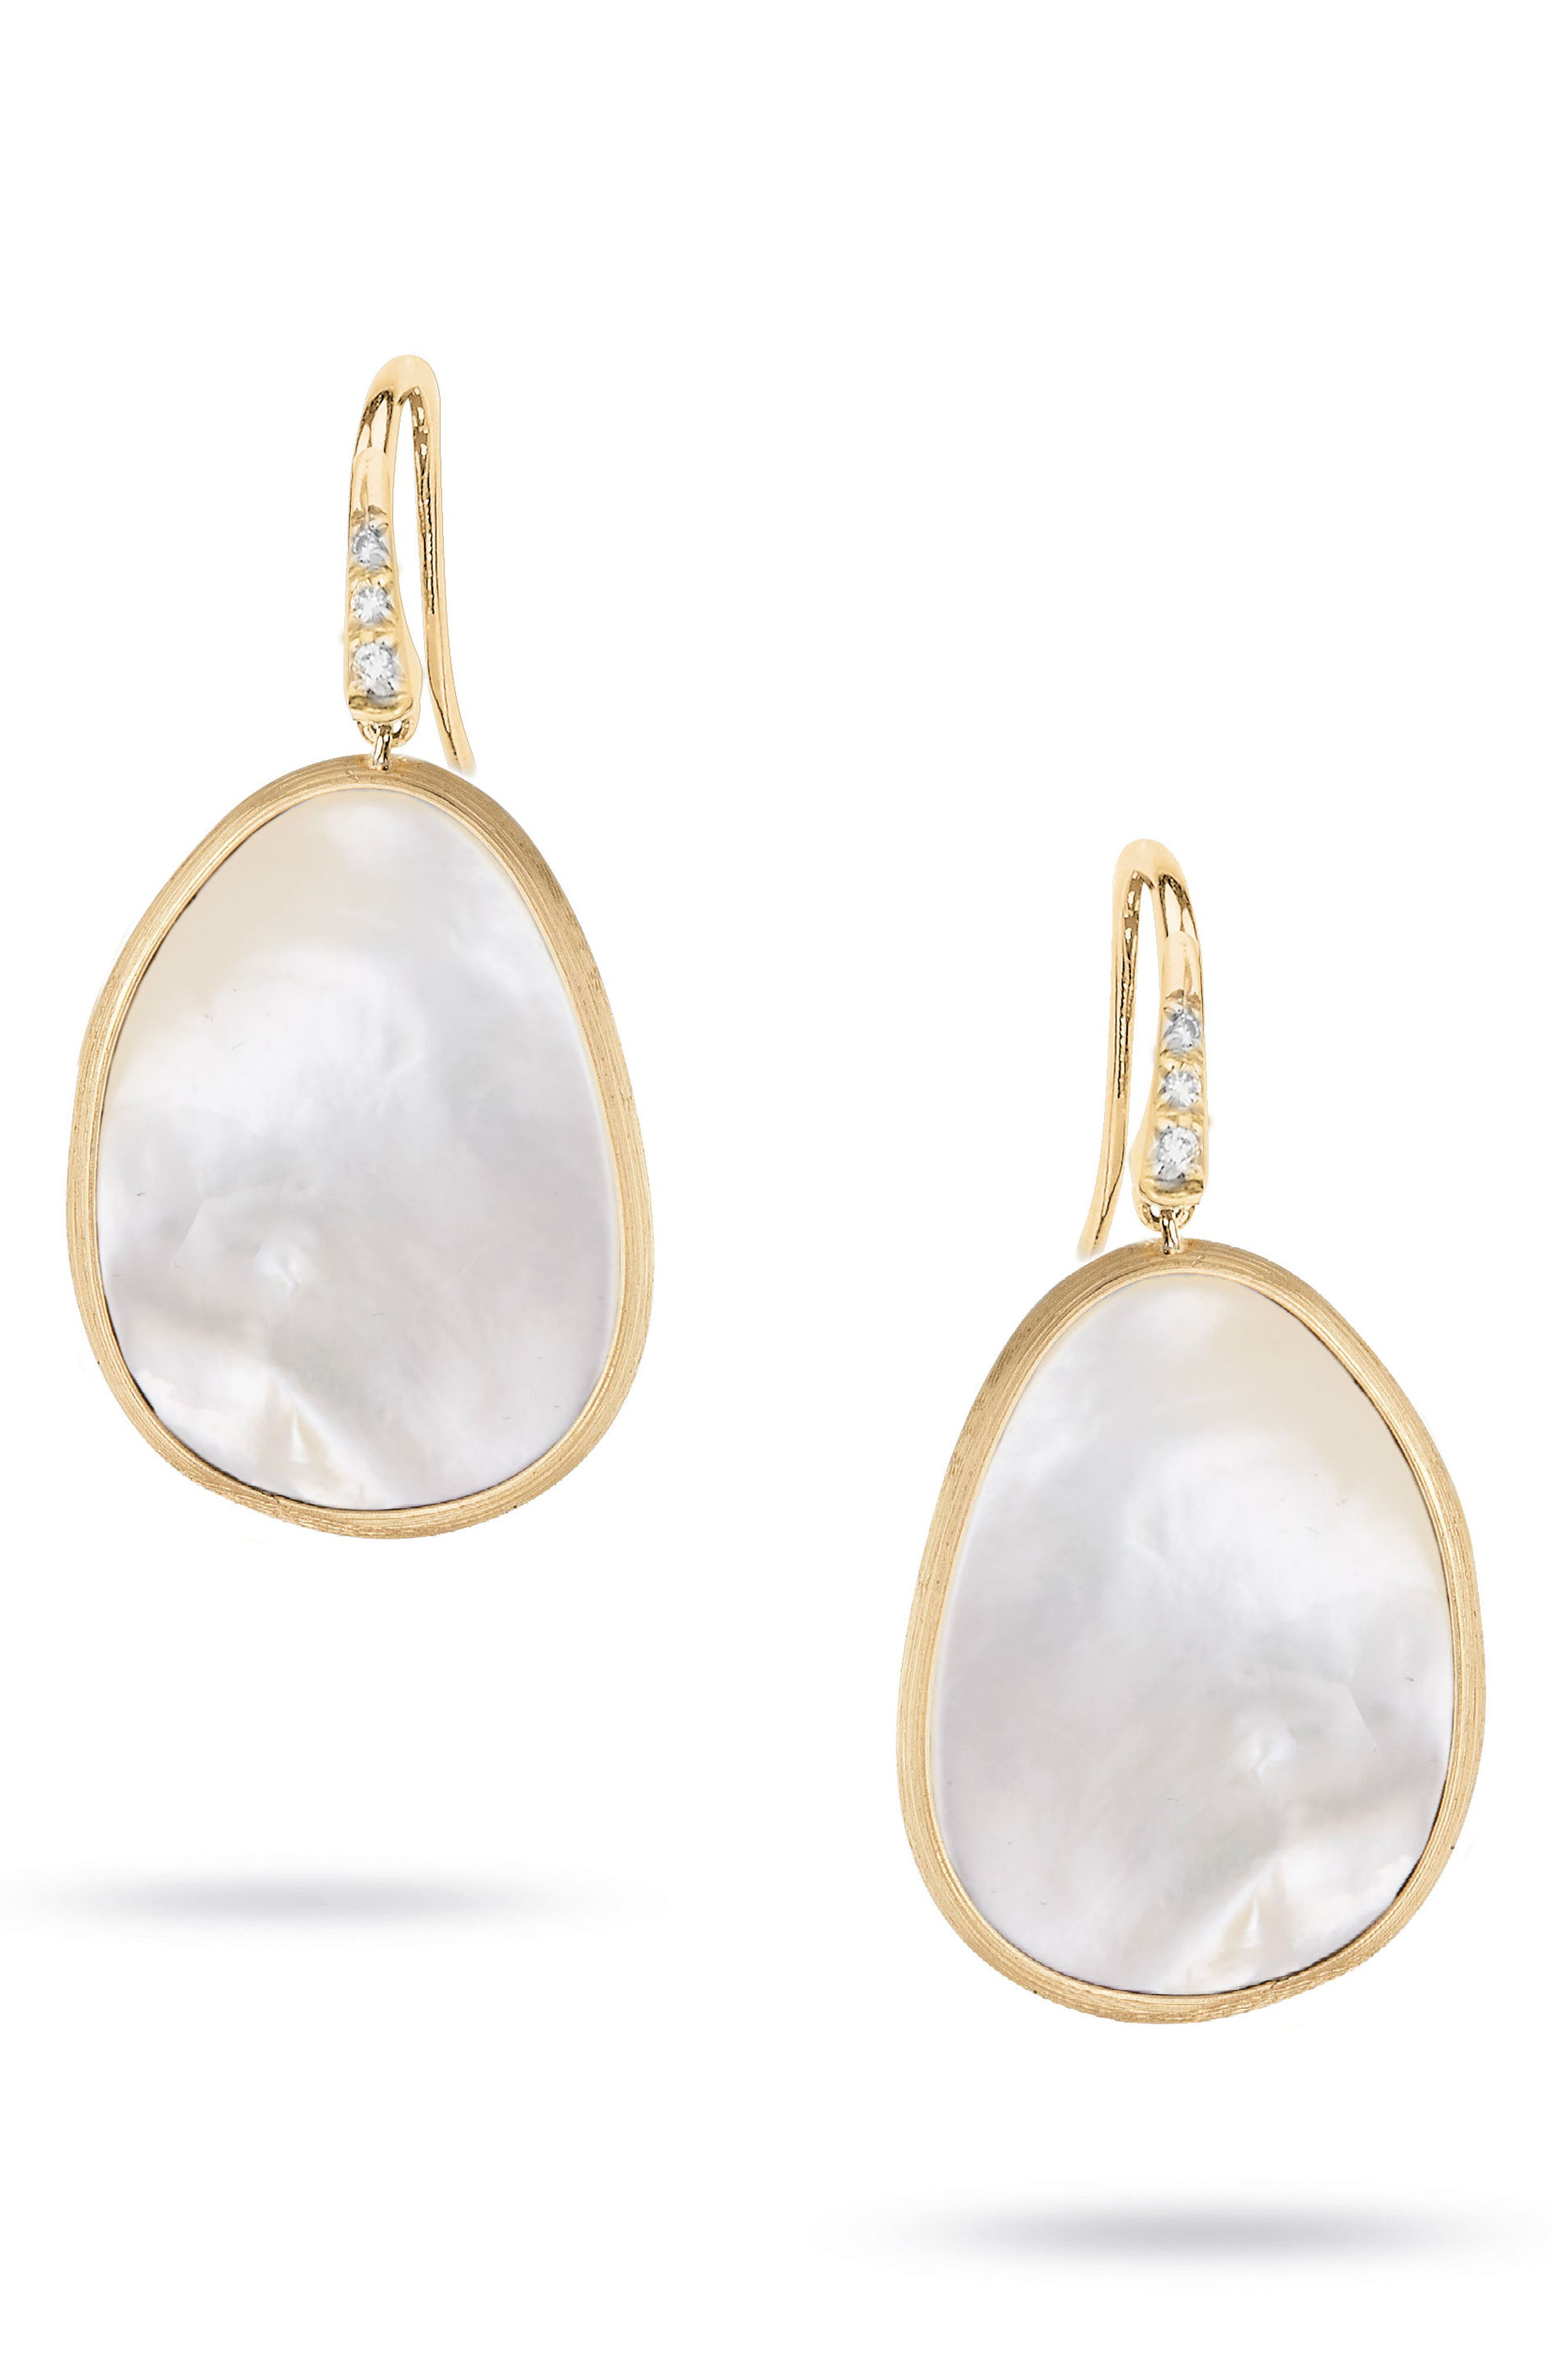 Lunaria Mother of Pearl Drop Earrings,                         Main,                         color, YELLOW GOLD